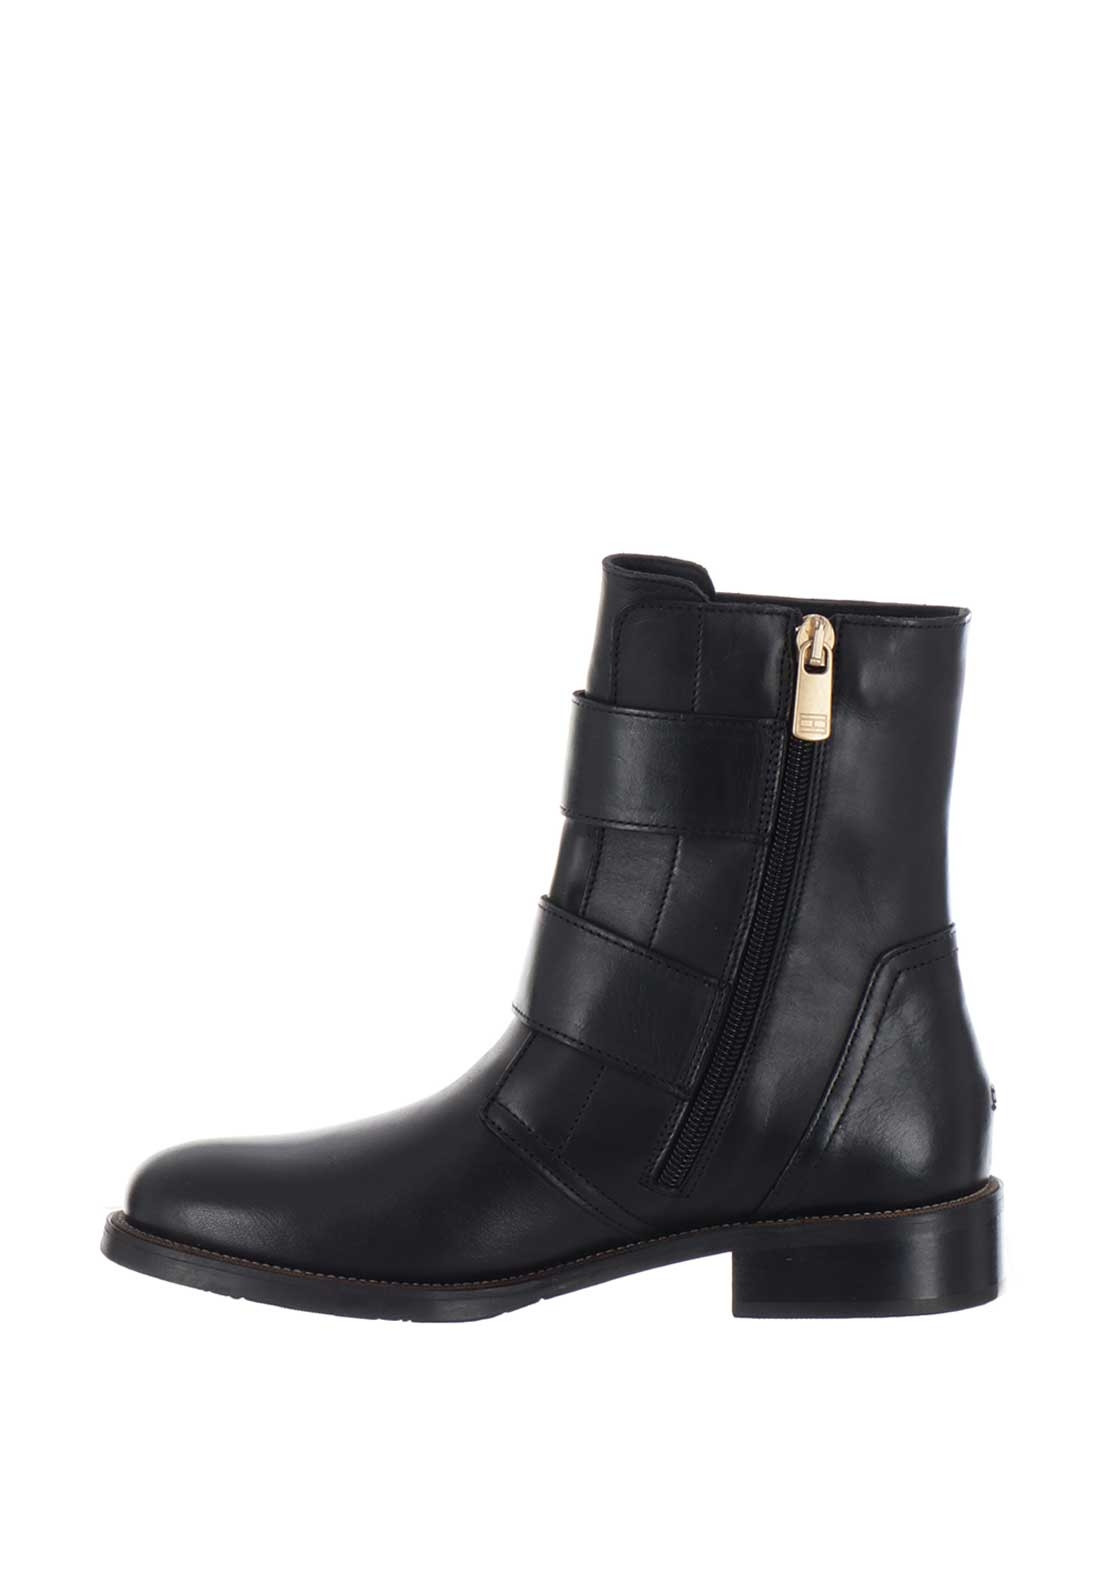 Professionel 2018 Schuhe limitierte Anzahl Tommy Hilfiger Womens Oversized Buckle Leather Boots, Black